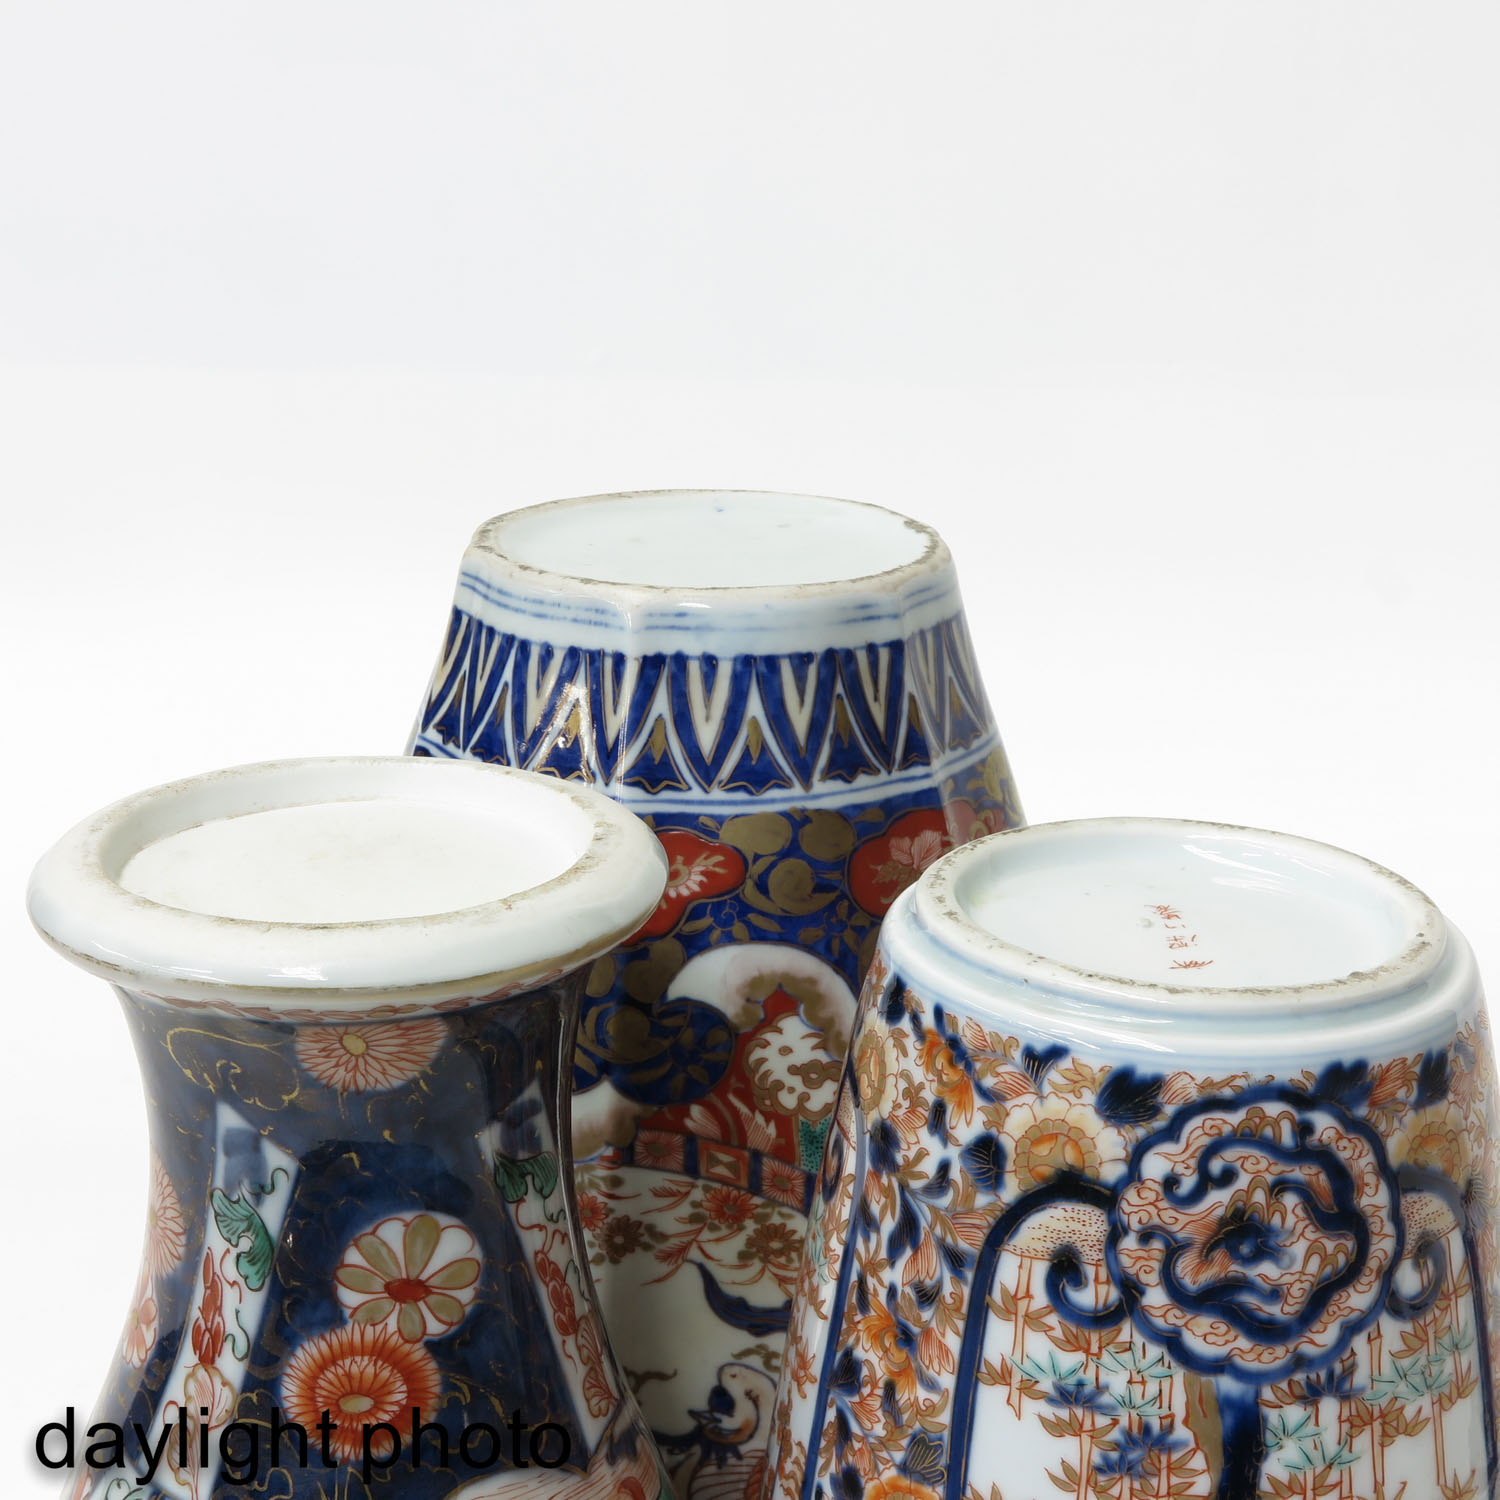 A Collection of 3 Imari Vases - Image 8 of 9